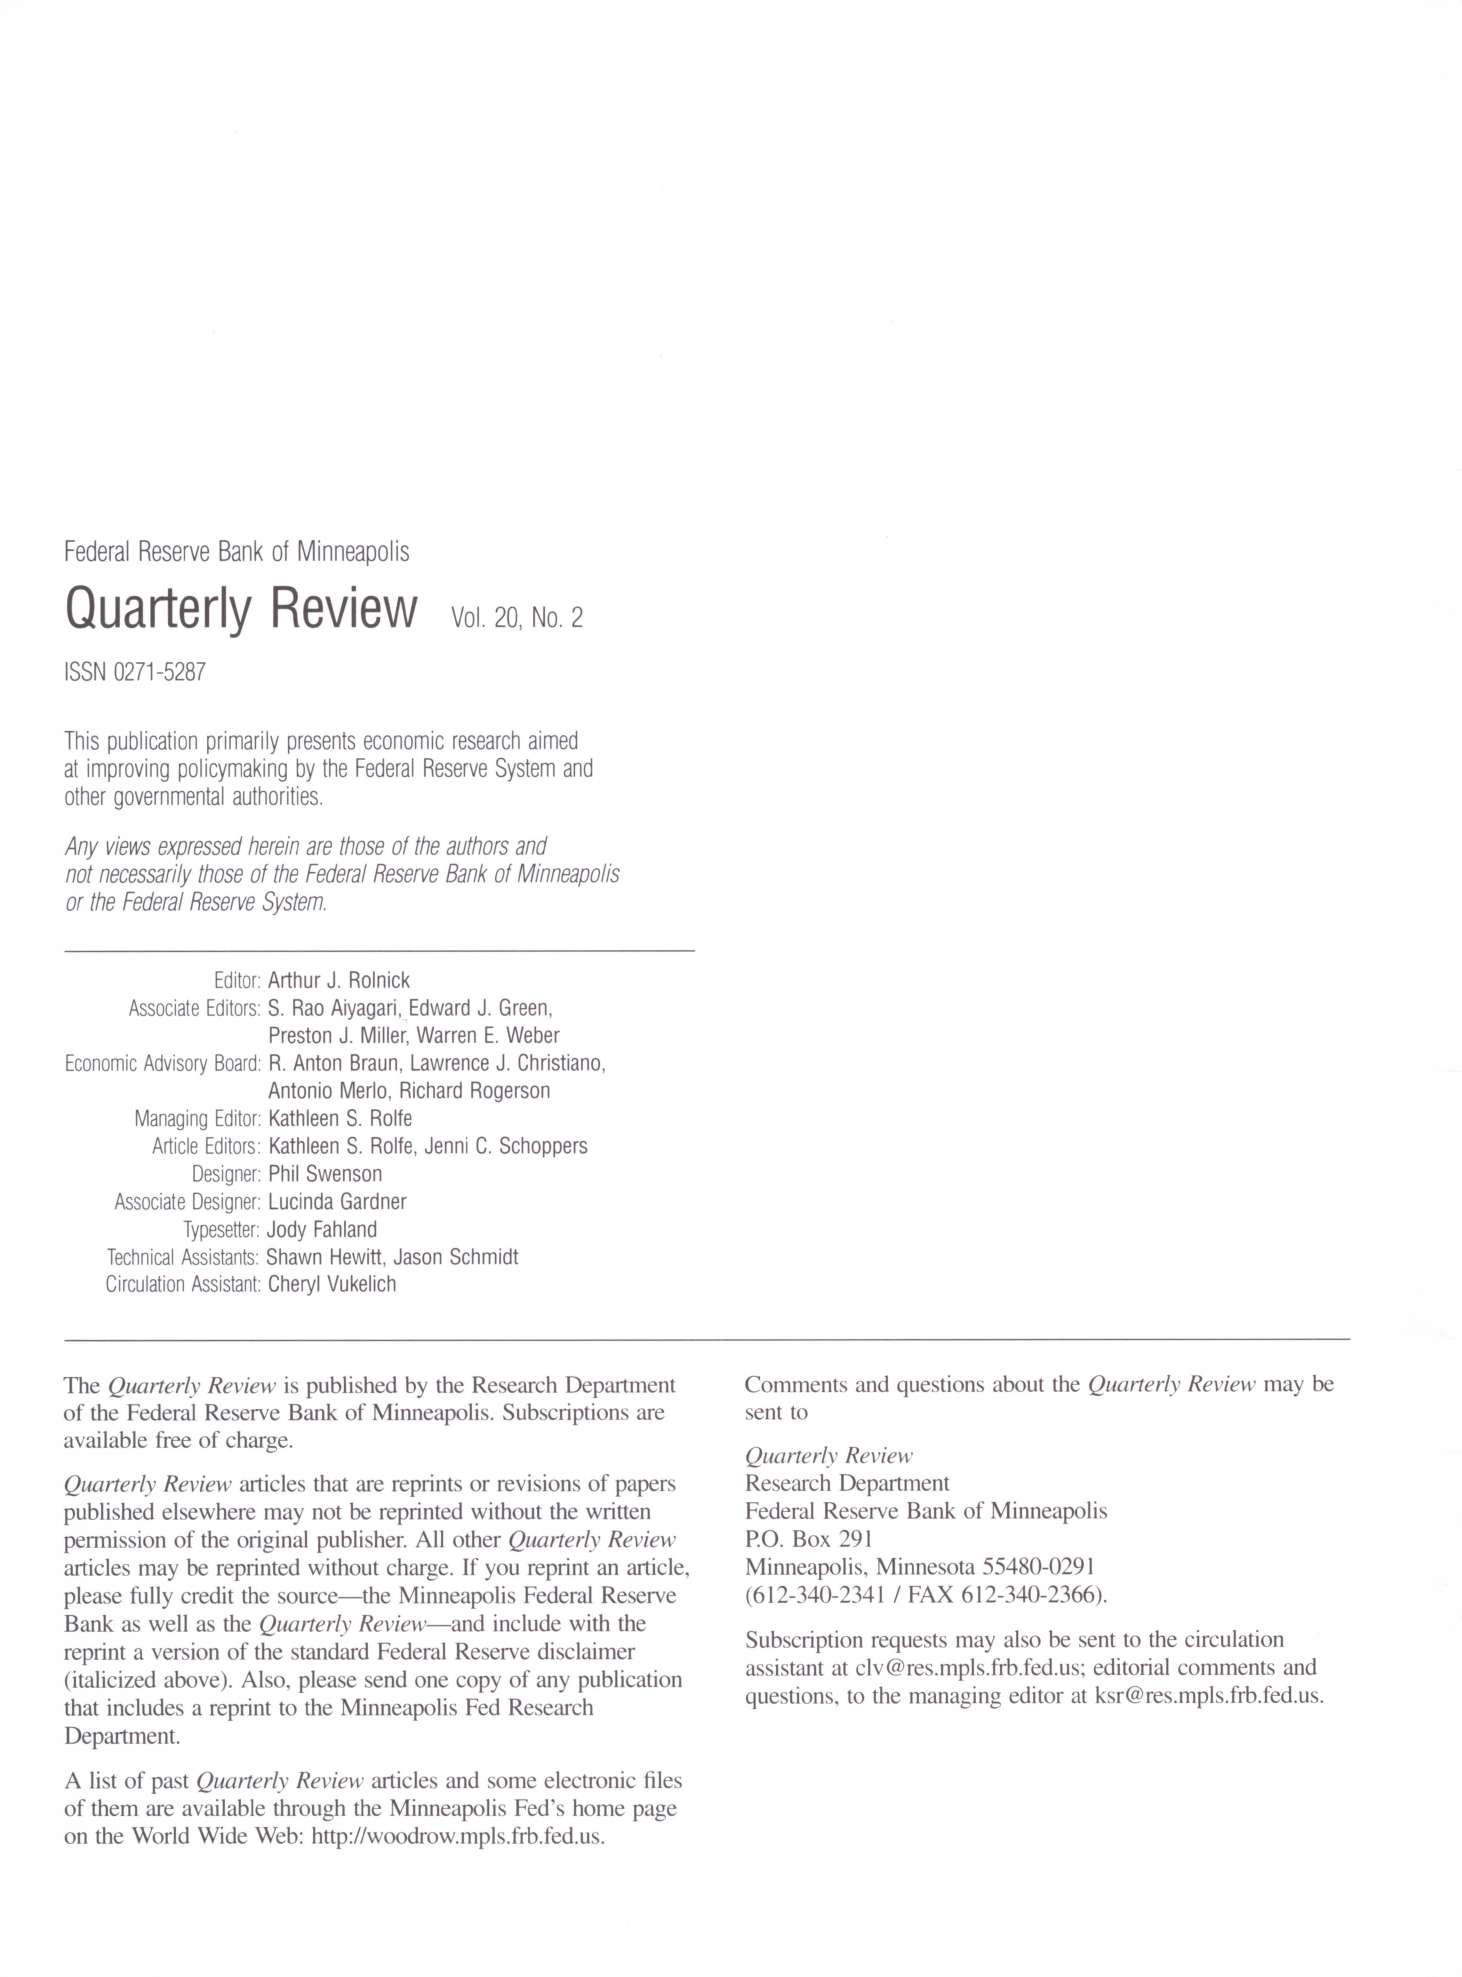 Federal Reserve Bank of Minneapolis Quarterly Review Vol. 20, No.